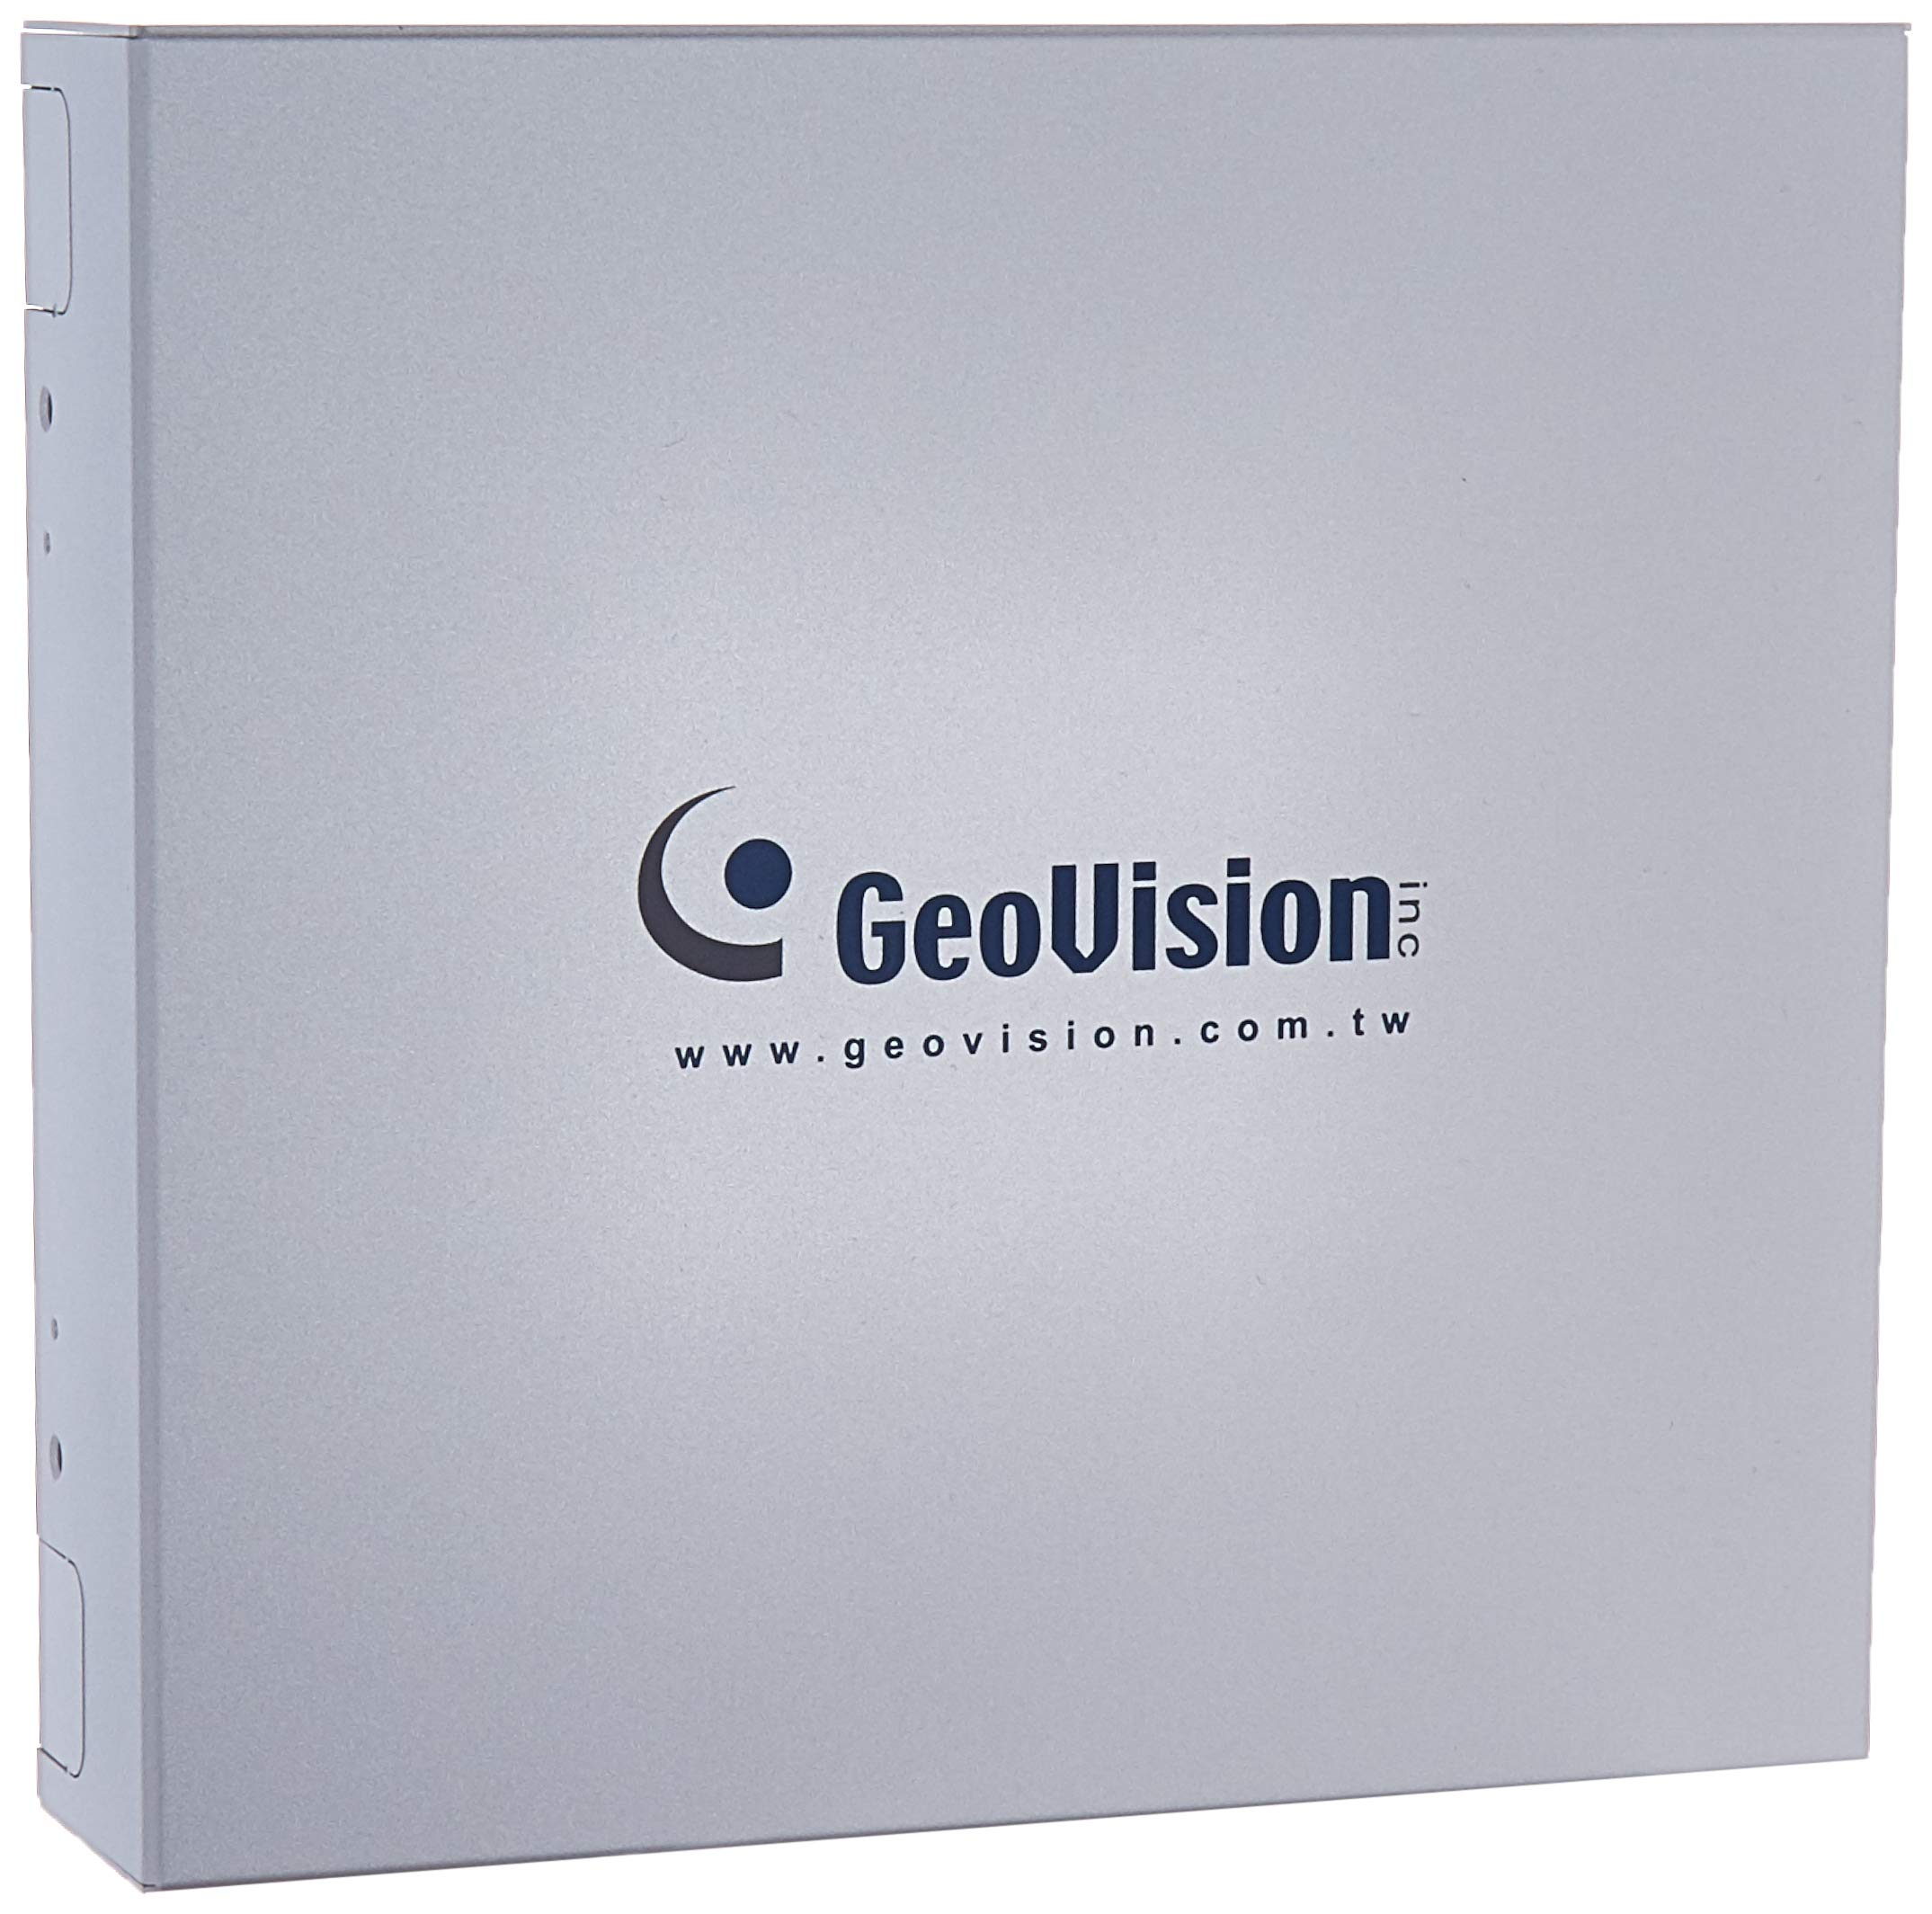 Geovision GV-AS2120 | IP Access Control Panel 8 Built-in Digital Inputs and 8 Built-in Outputs by GeoVision